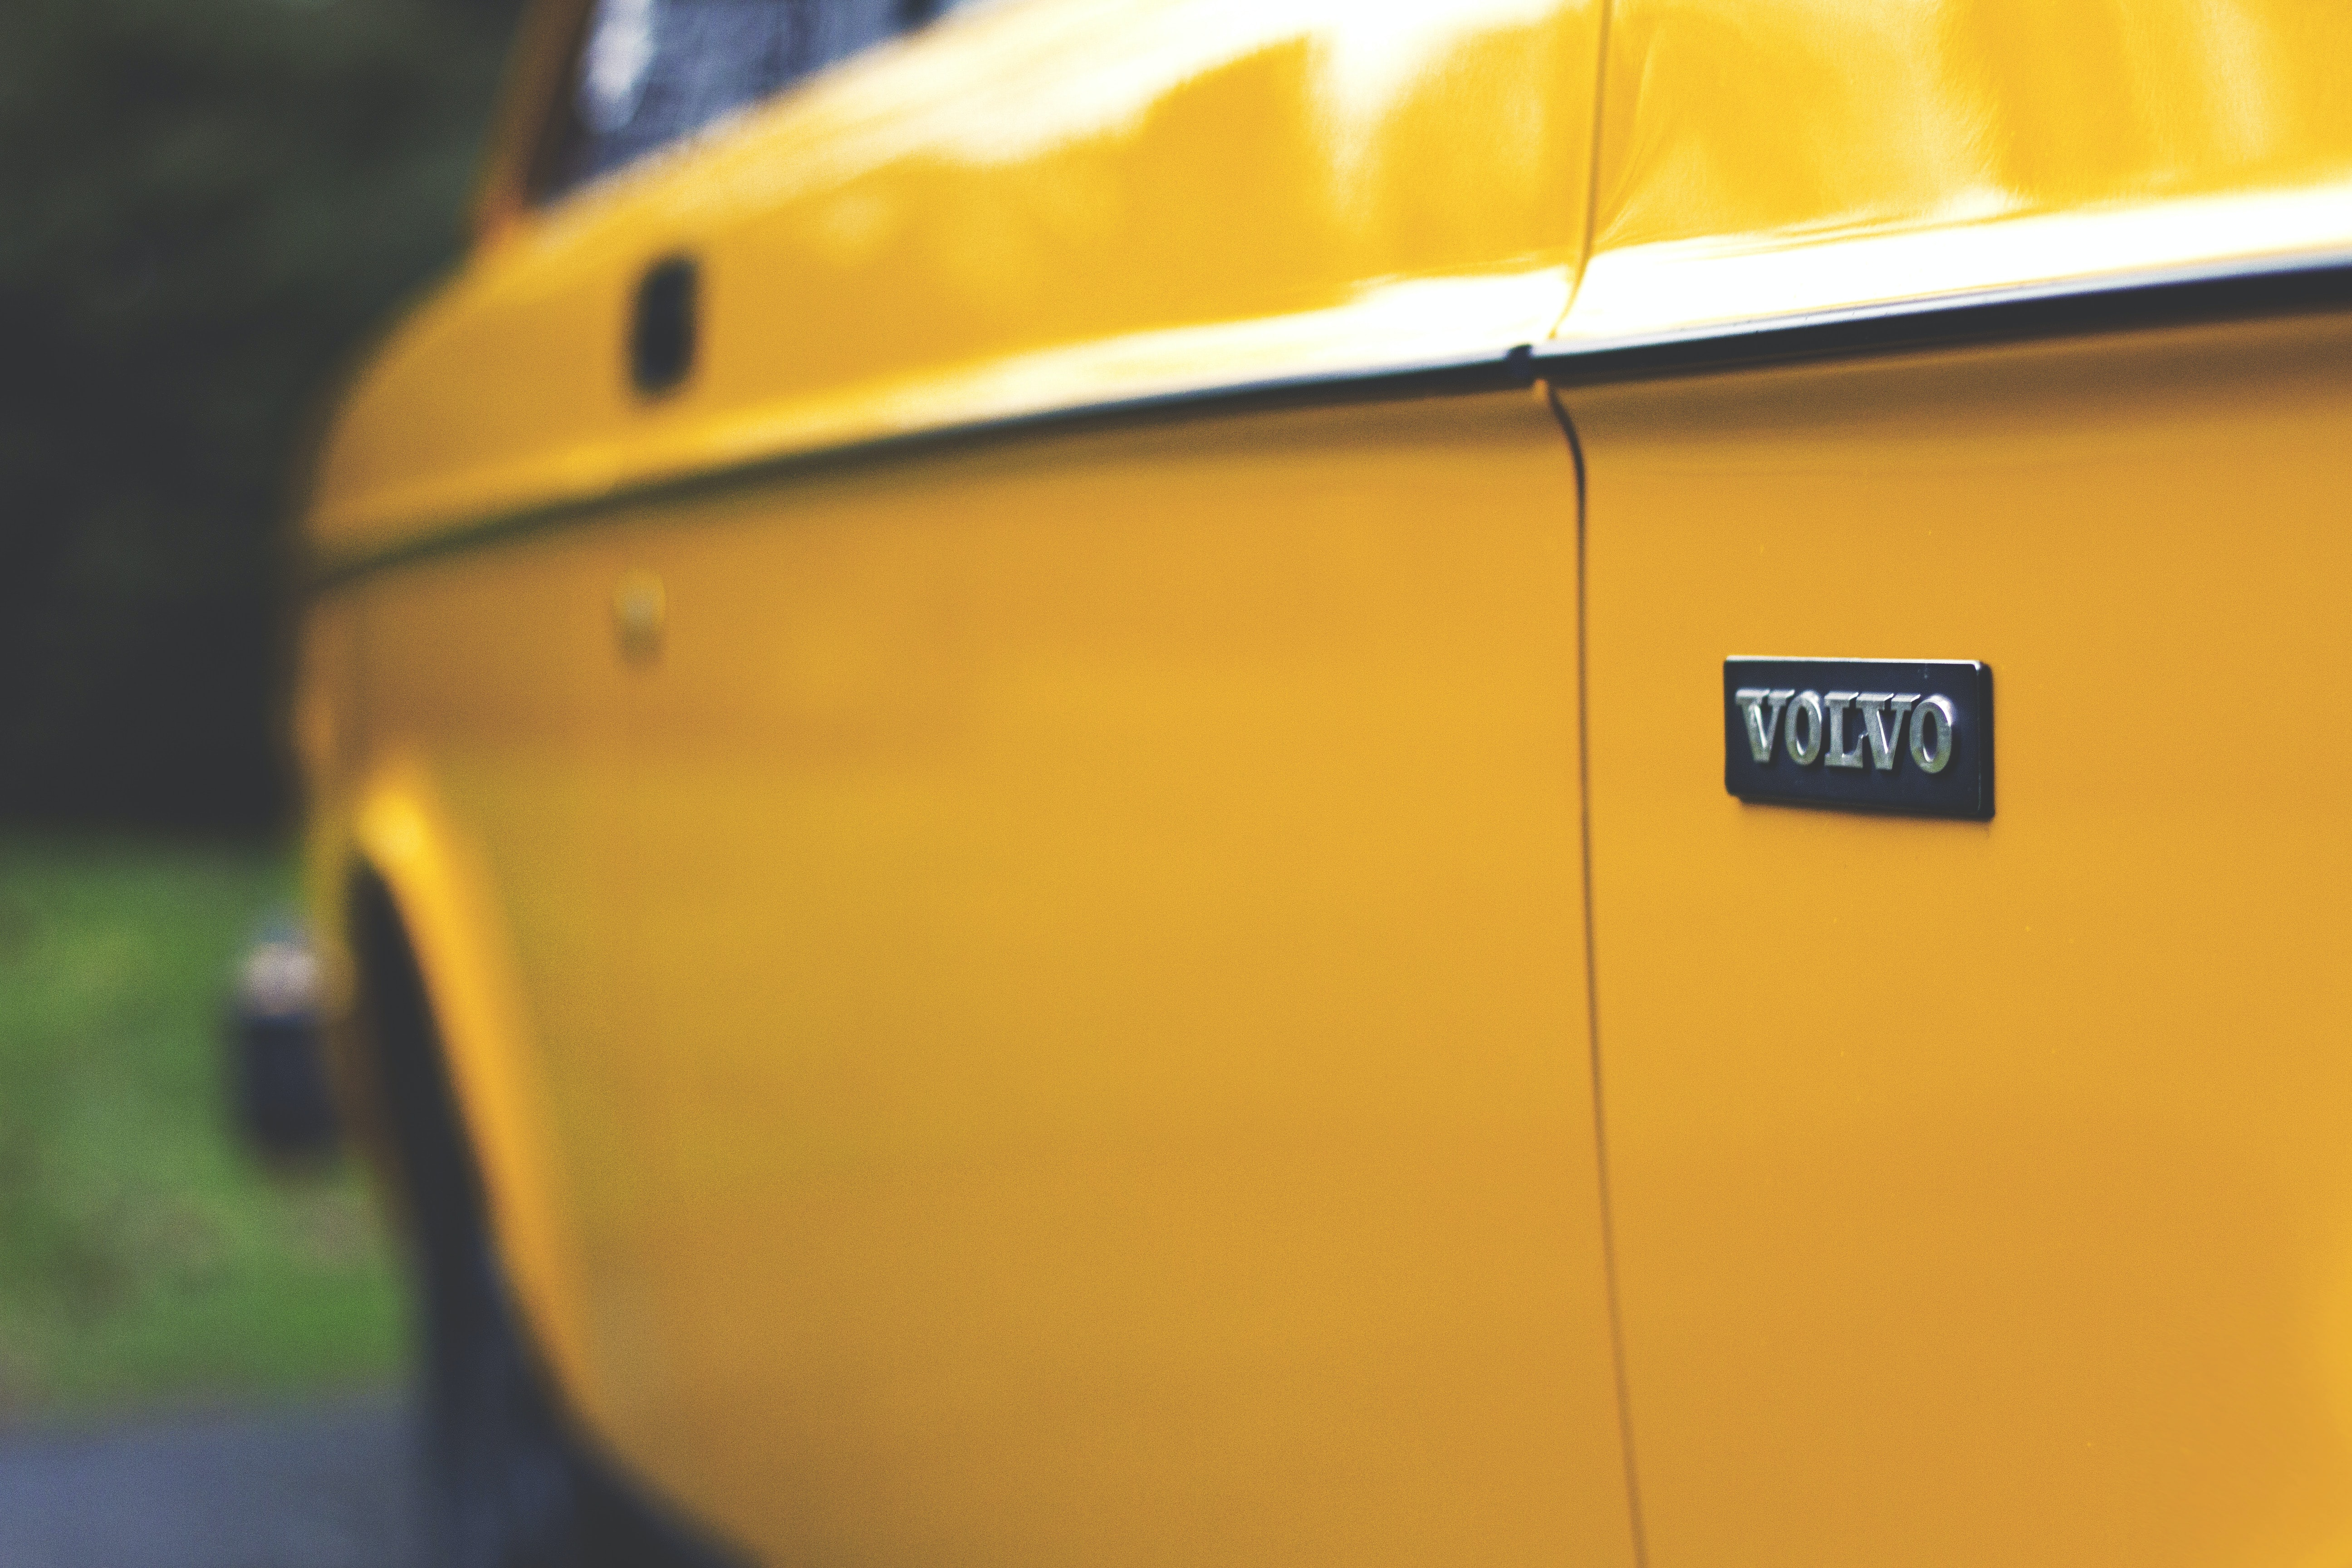 Close up shot of the door of a shiny, yellow, vintage Volvo